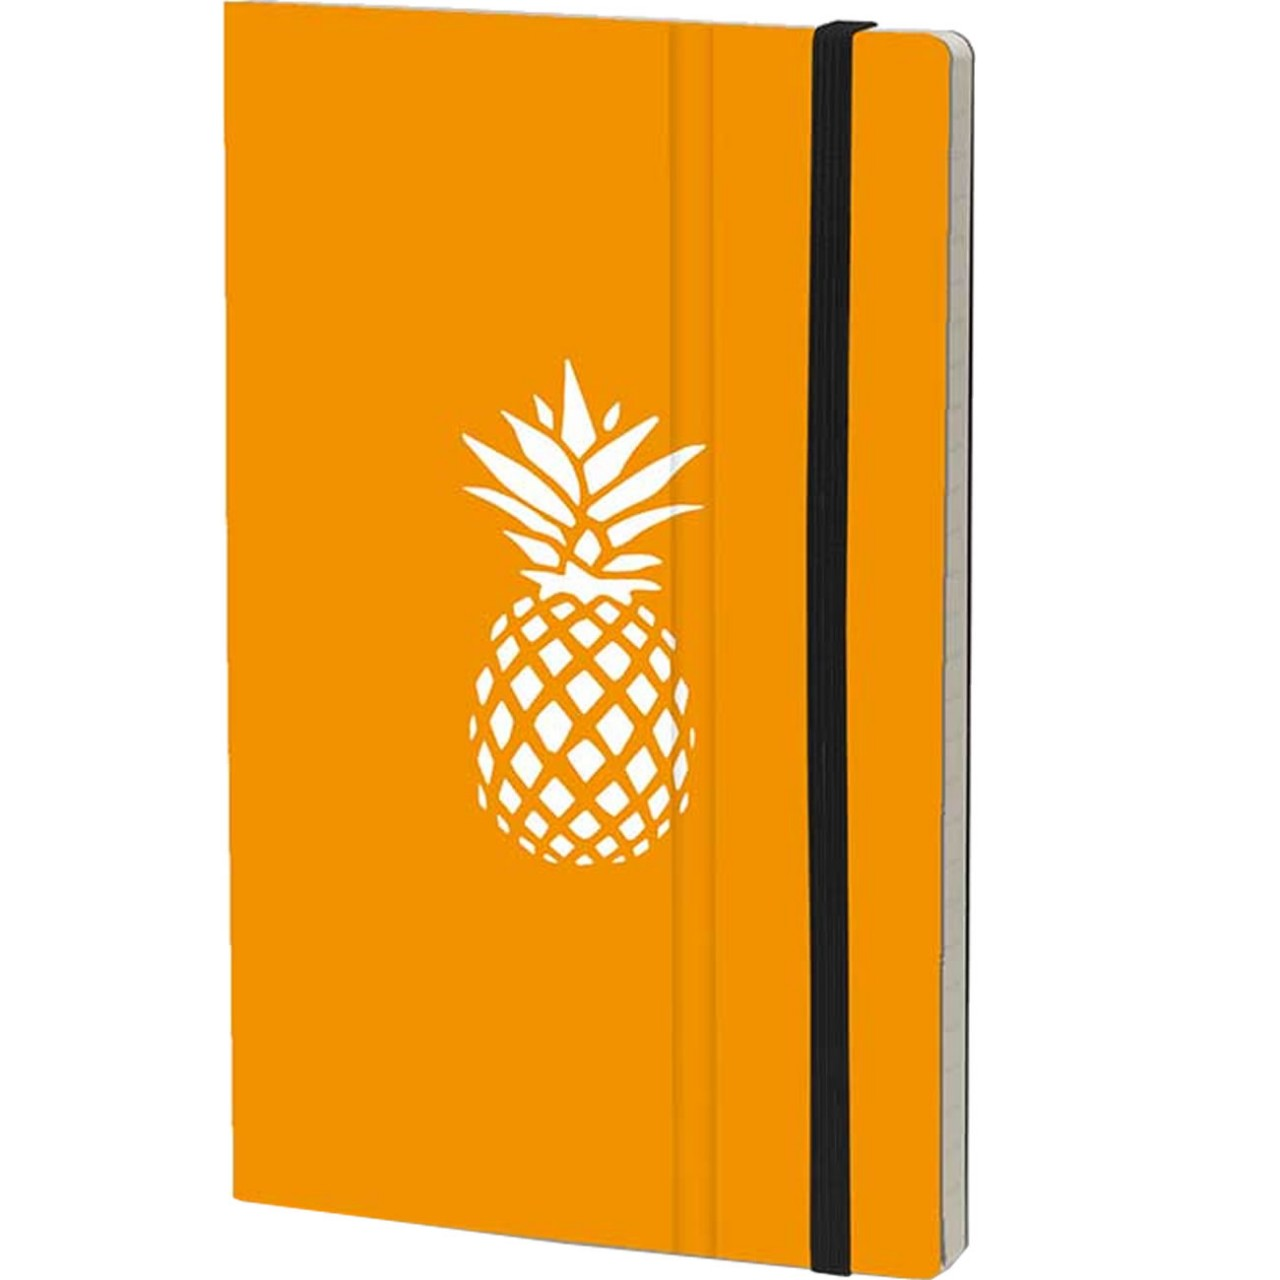 Stifflexible Notizbuch FRESH FRUIT 9 x 14 cm 144 S., PINEAPPLE